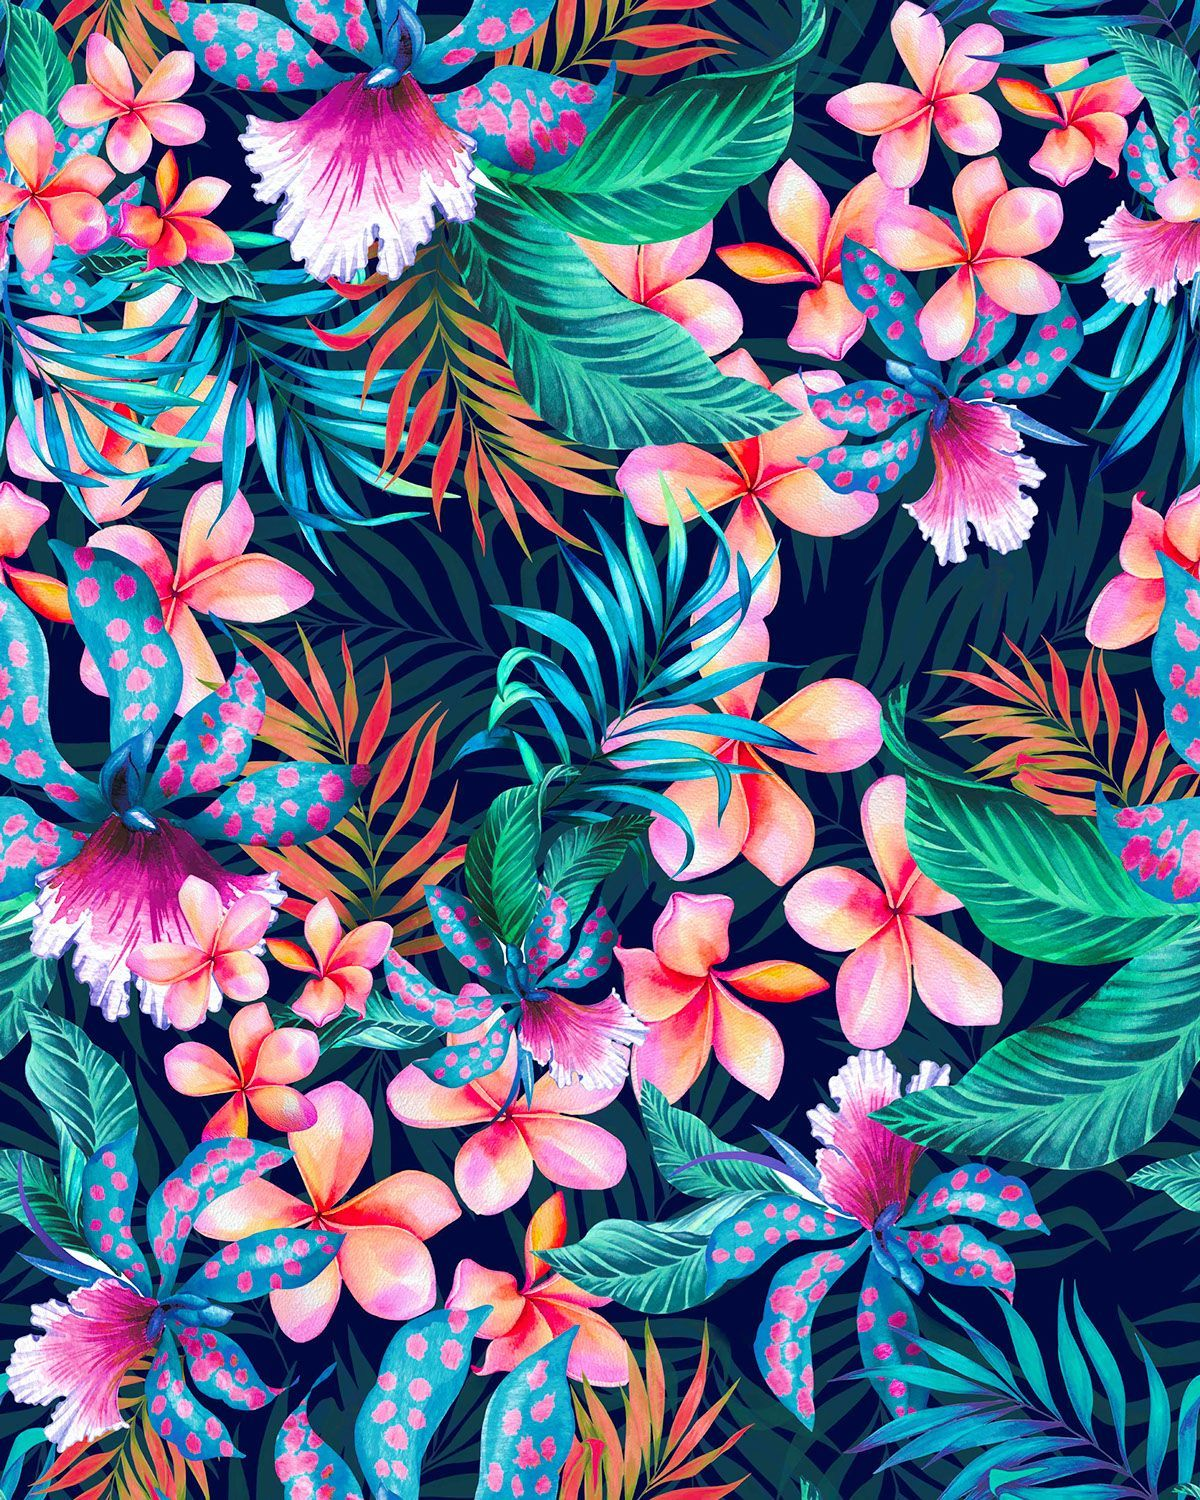 Tropical Flowers Tumblr Wallpapers Top Free Tropical Flowers